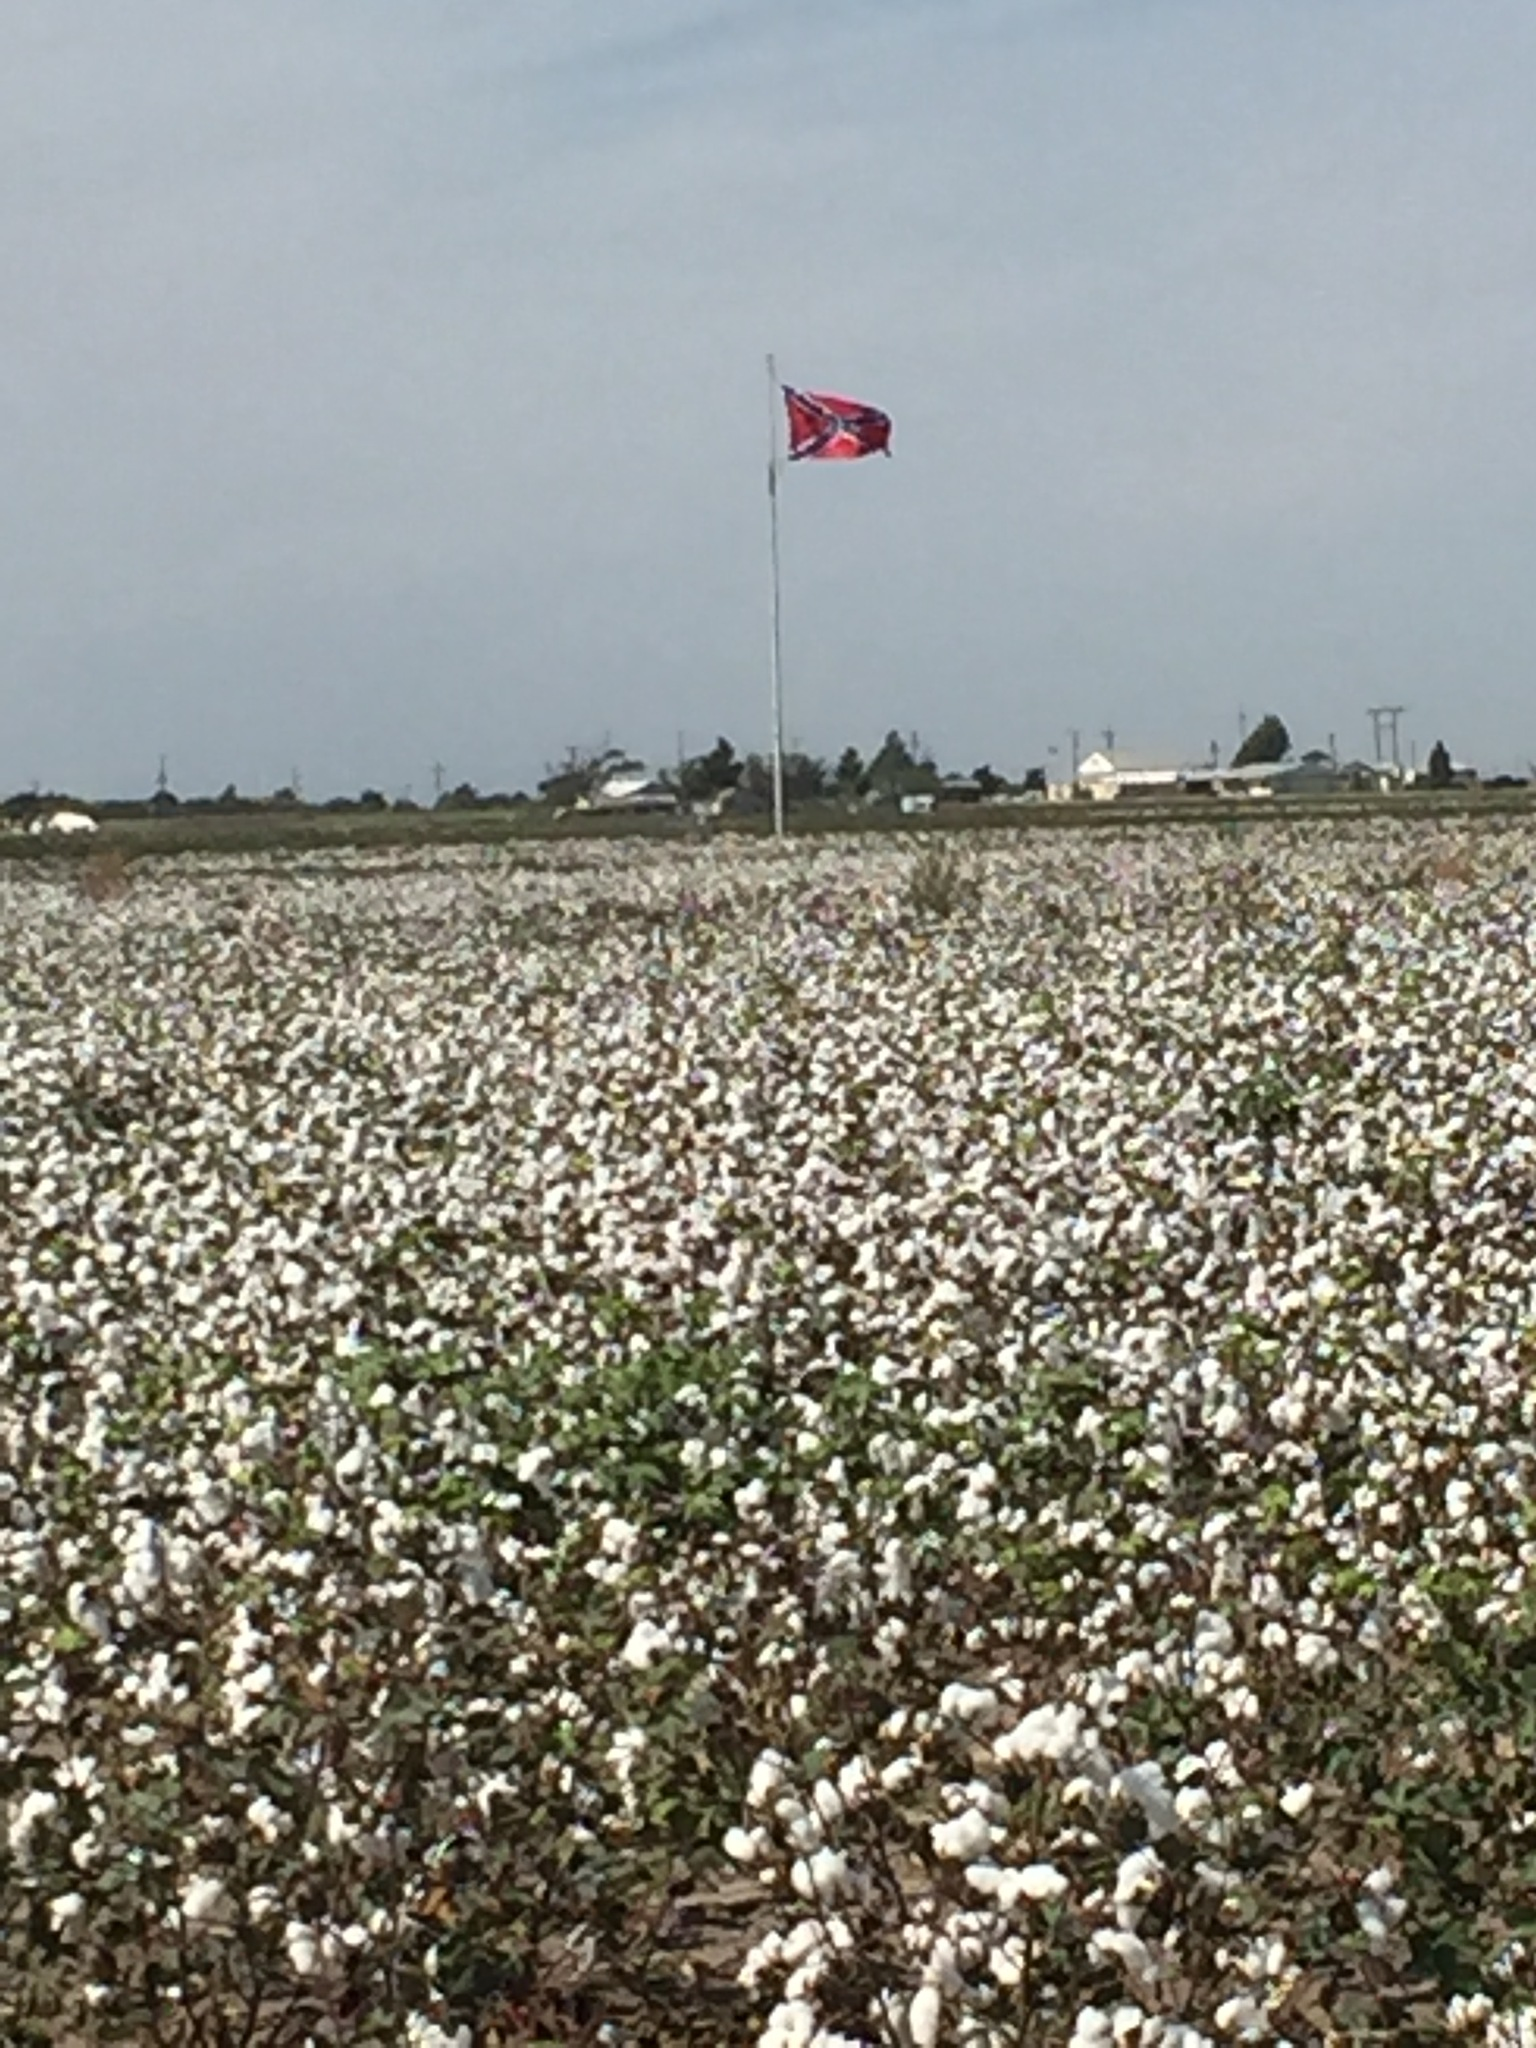 Confederate flag in a cotton field.  by john.fisher.7315